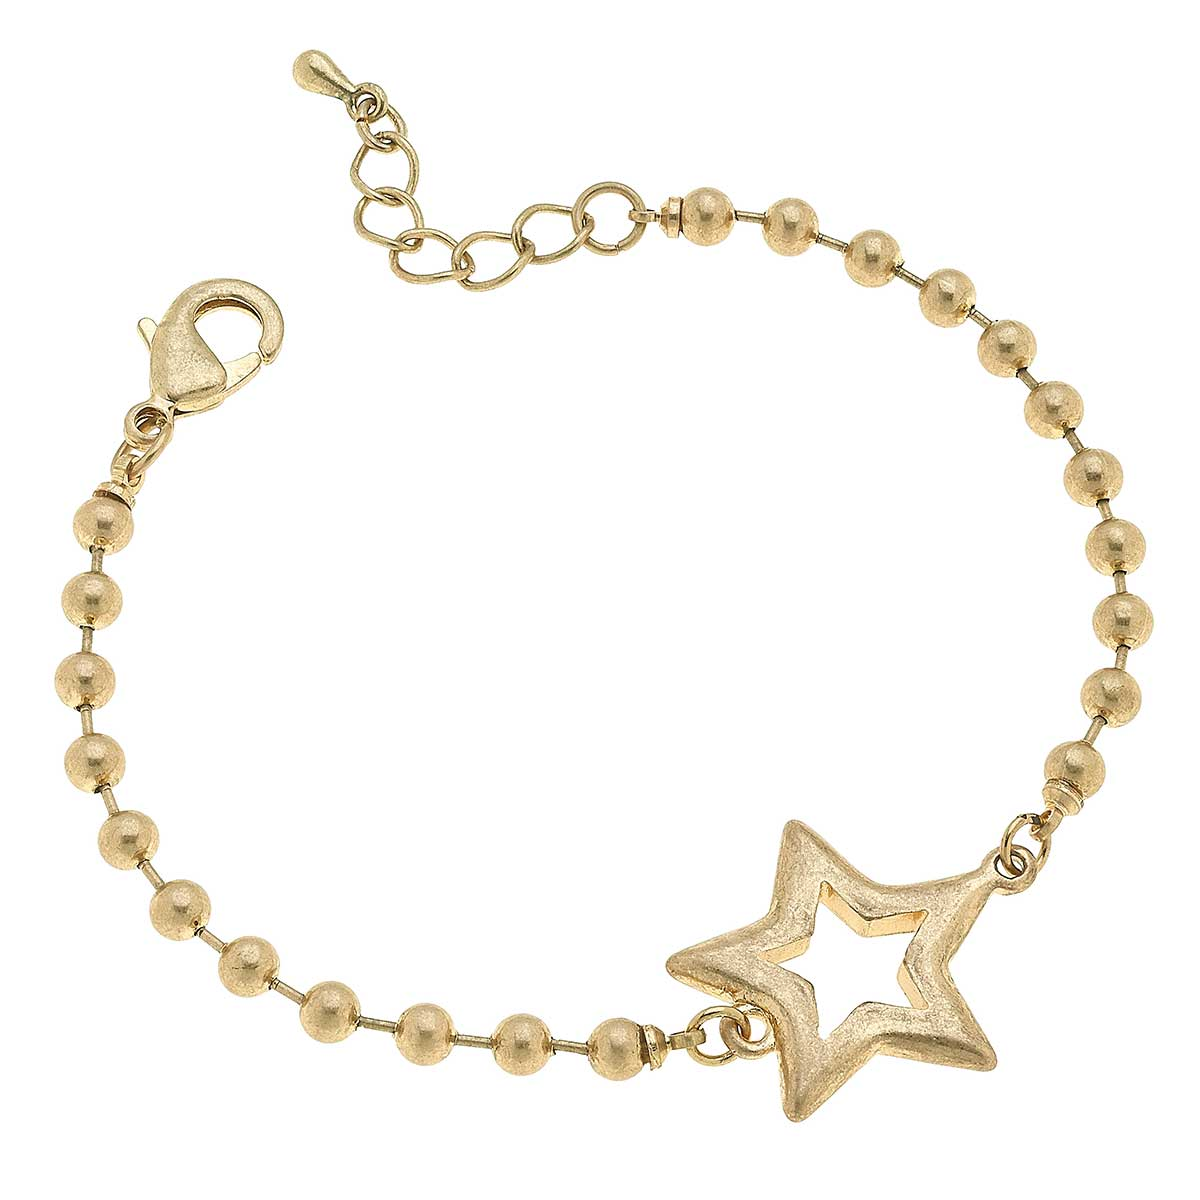 Grace Ball Chain Bracelet in Worn Gold